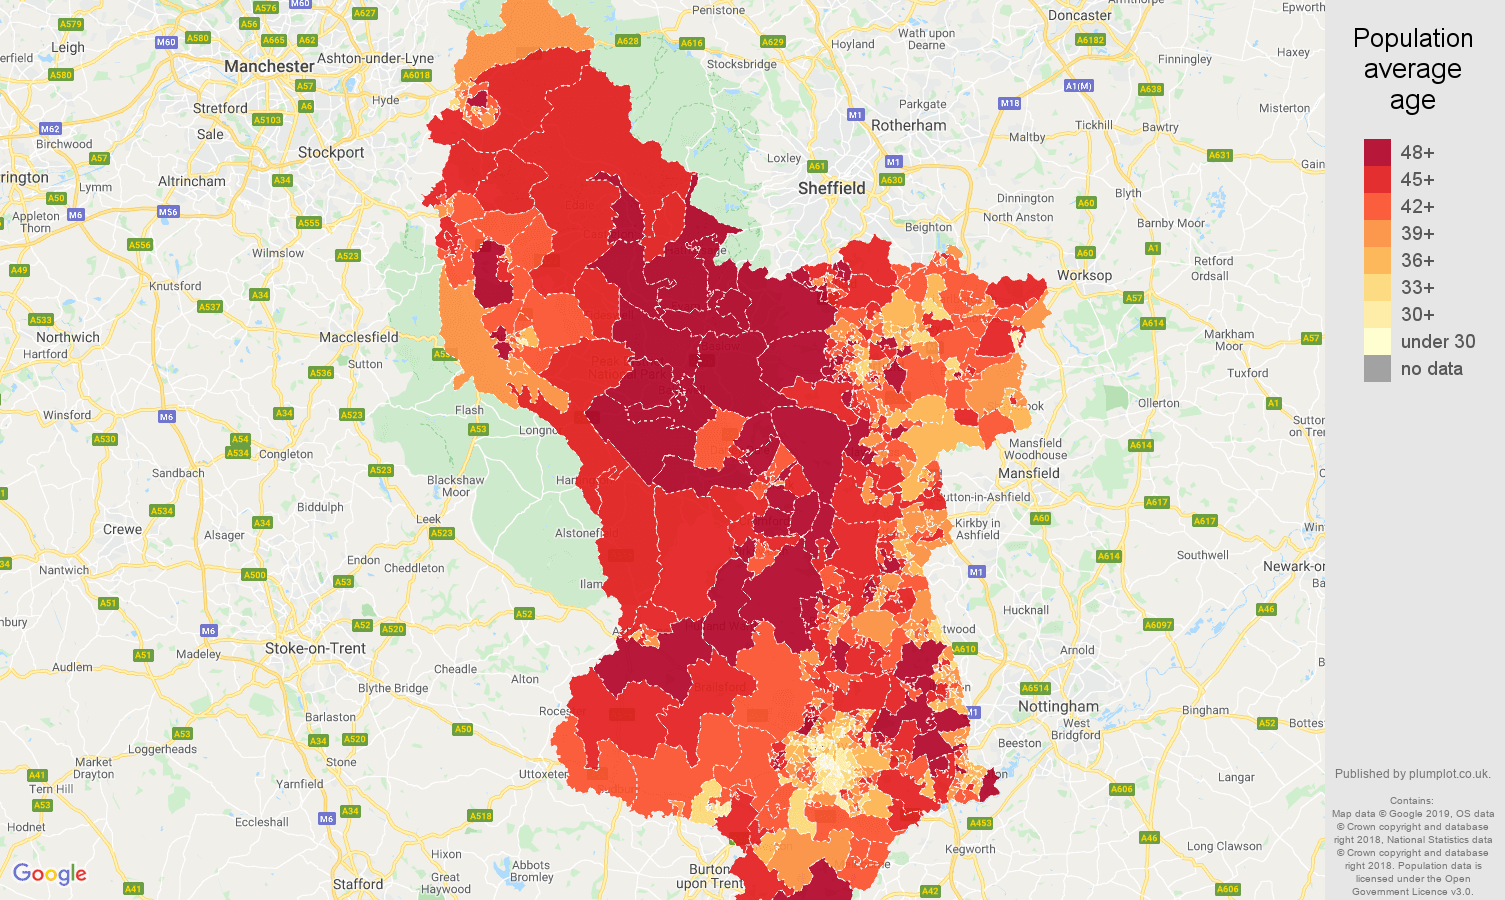 Derbyshire population average age map